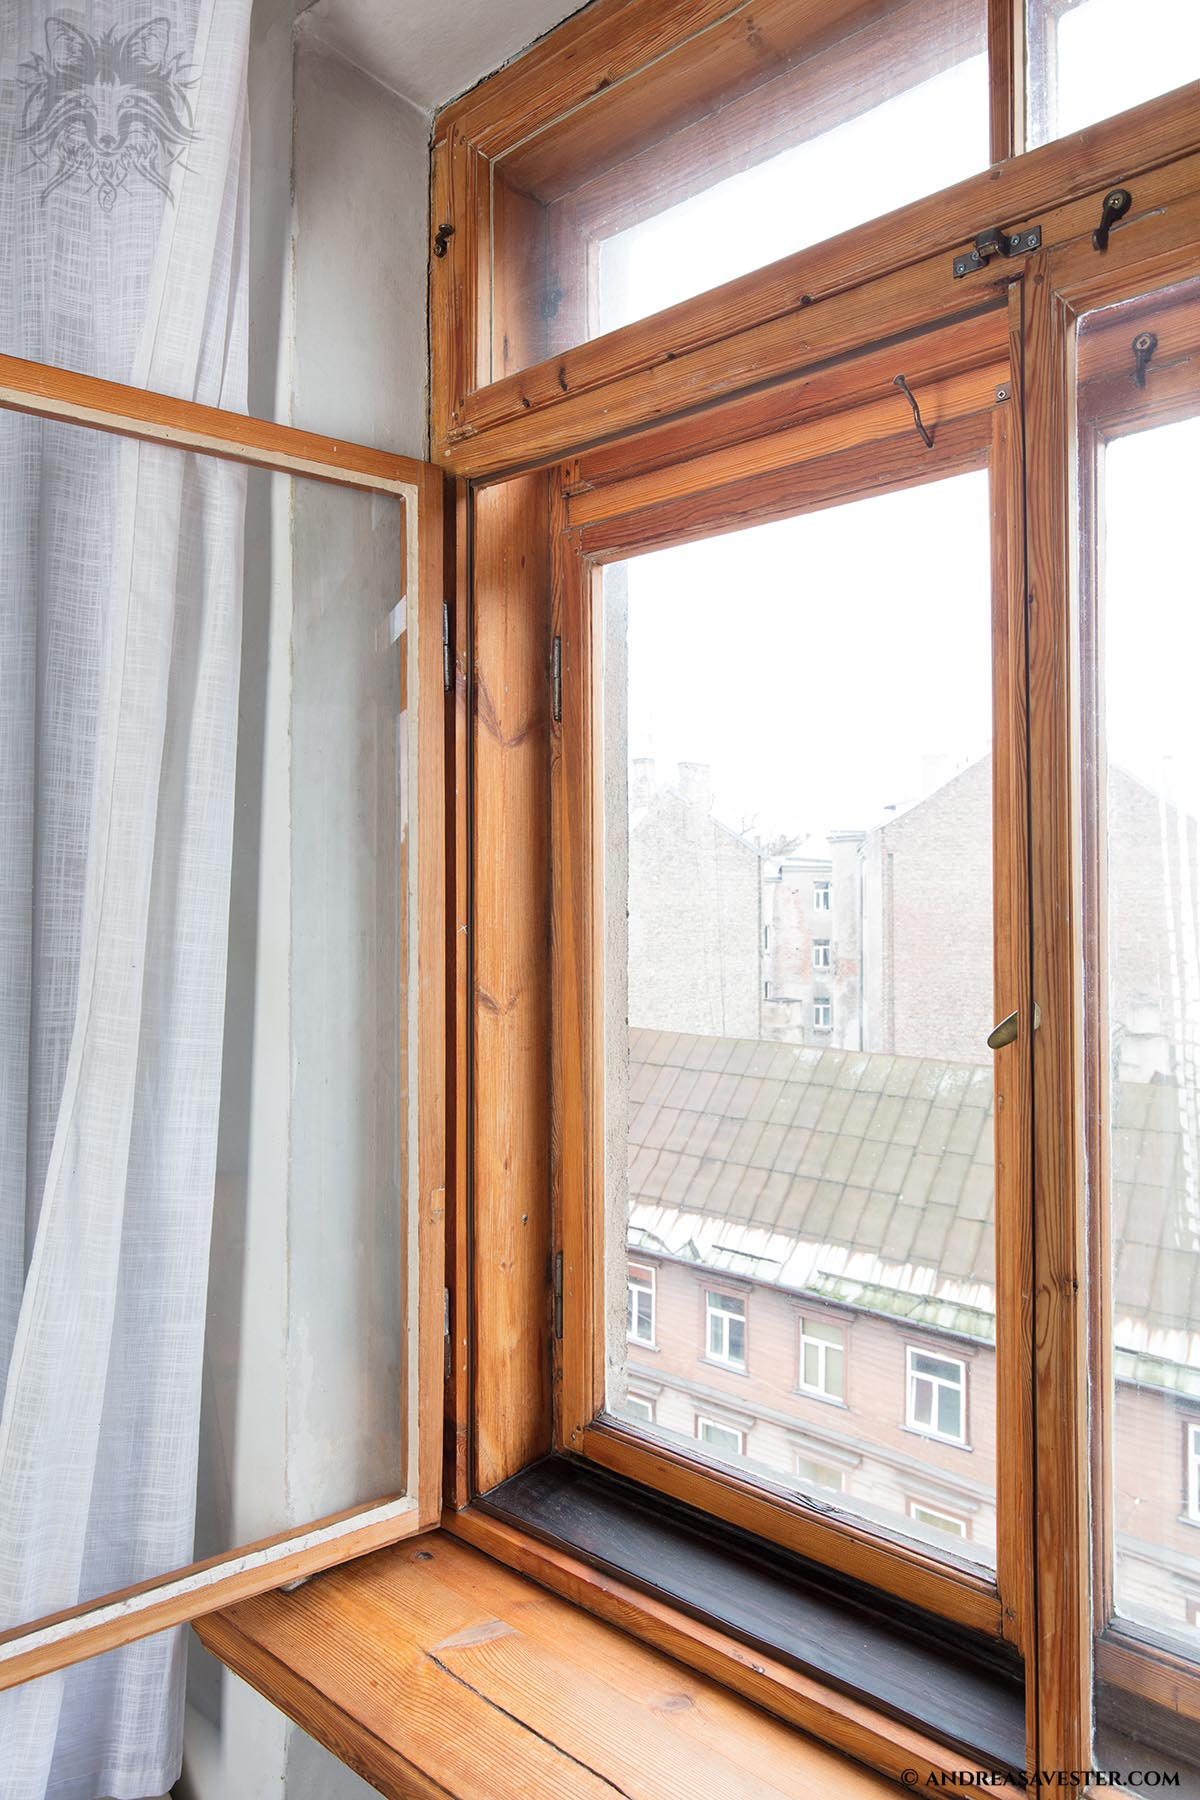 How To Re And Repair Old Wooden Windows